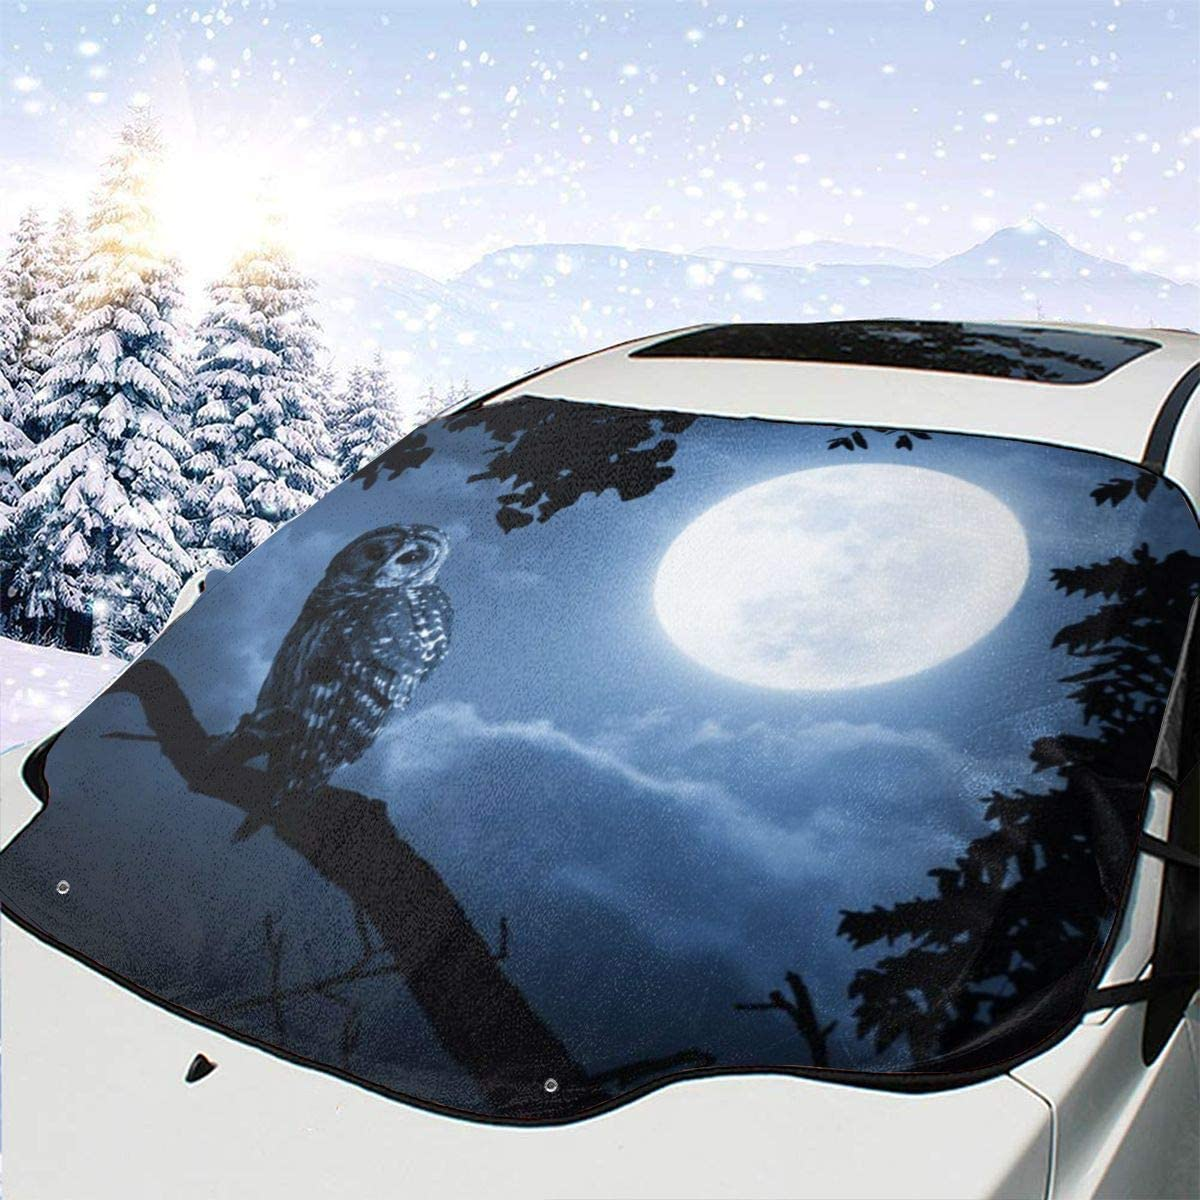 THONFIRE Car Front Window Windshield Winter Sun Shades Hallloween Night Owl Cover Rainproof Blocks Heat Damage Free Visor Protector Trucks Summer Heatshield